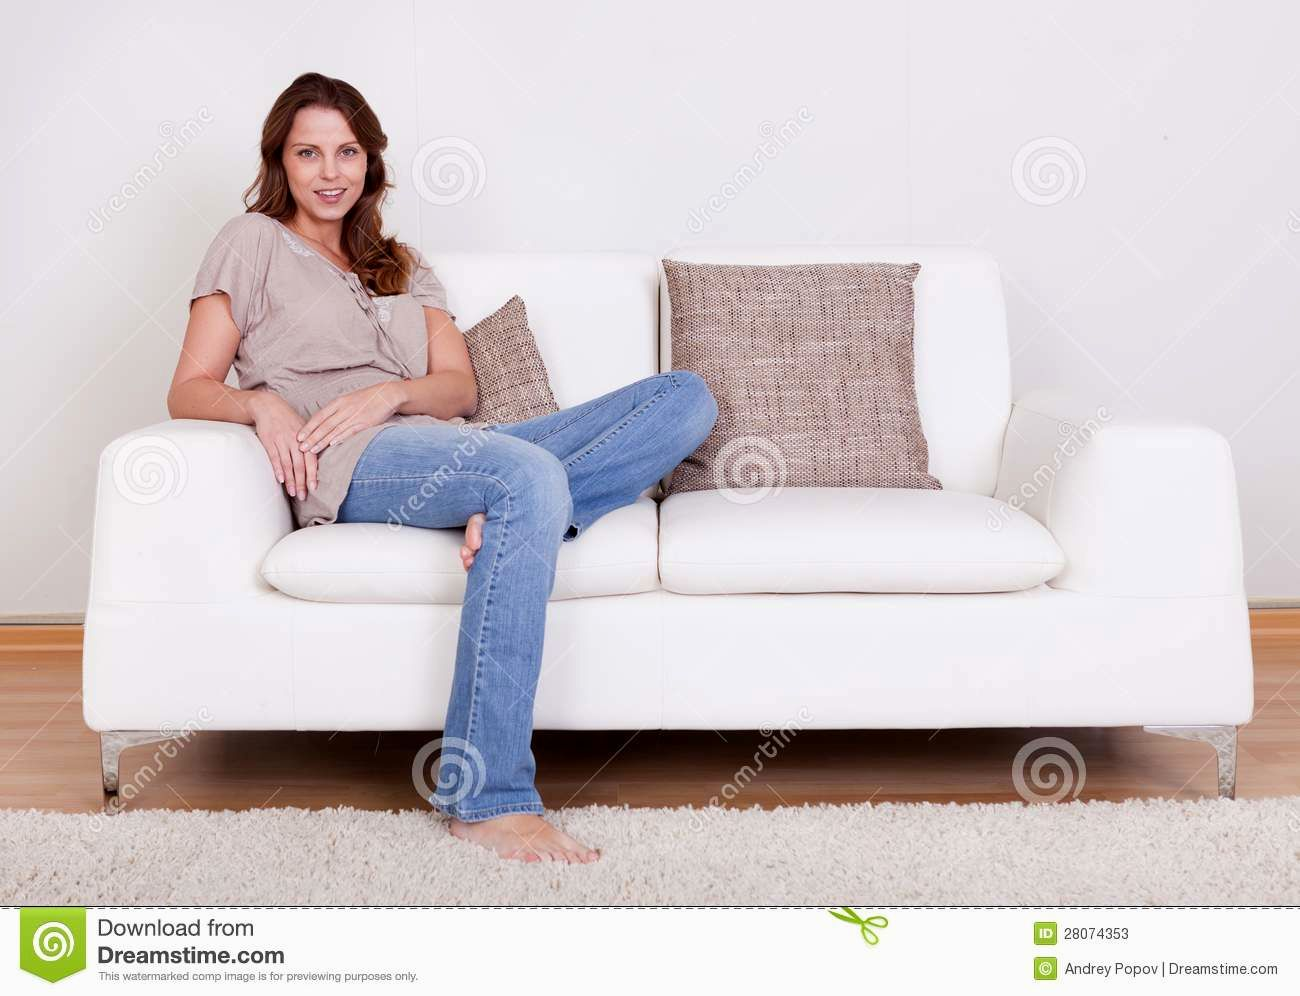 fresh couches and sofas portrait-Modern Couches and sofas Model